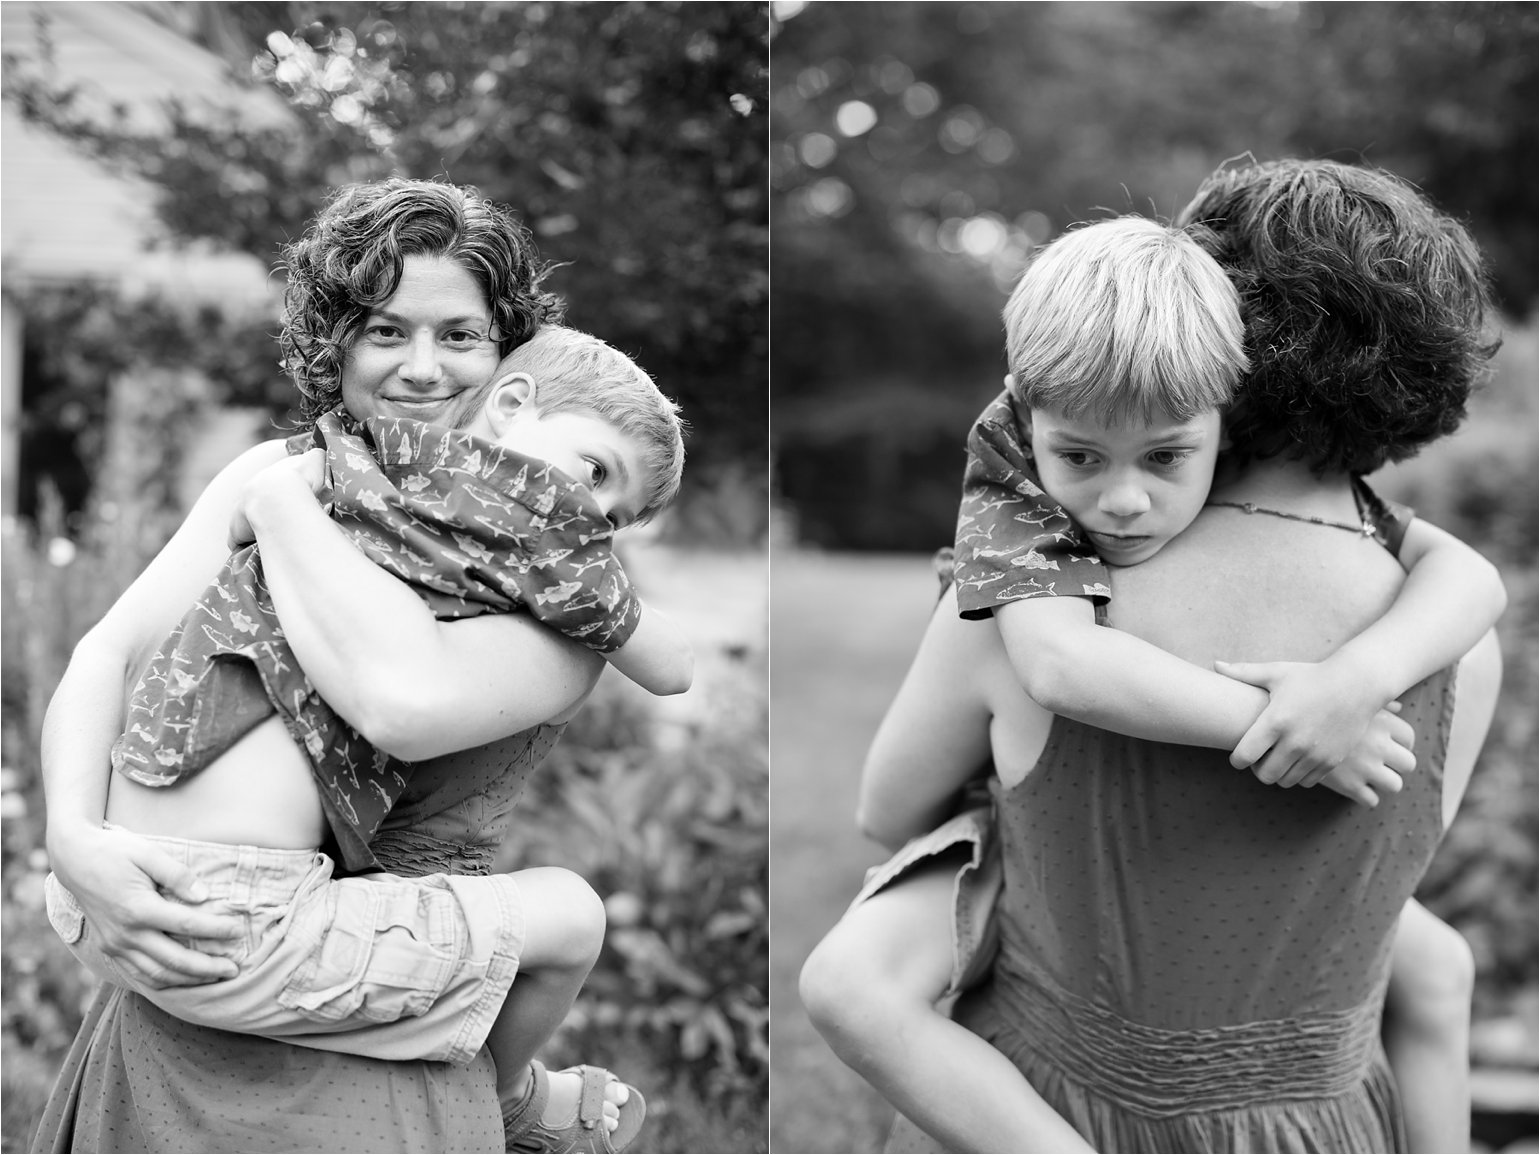 Black and White Portraits - Mother and Son © 2015 Maundy Mitchell